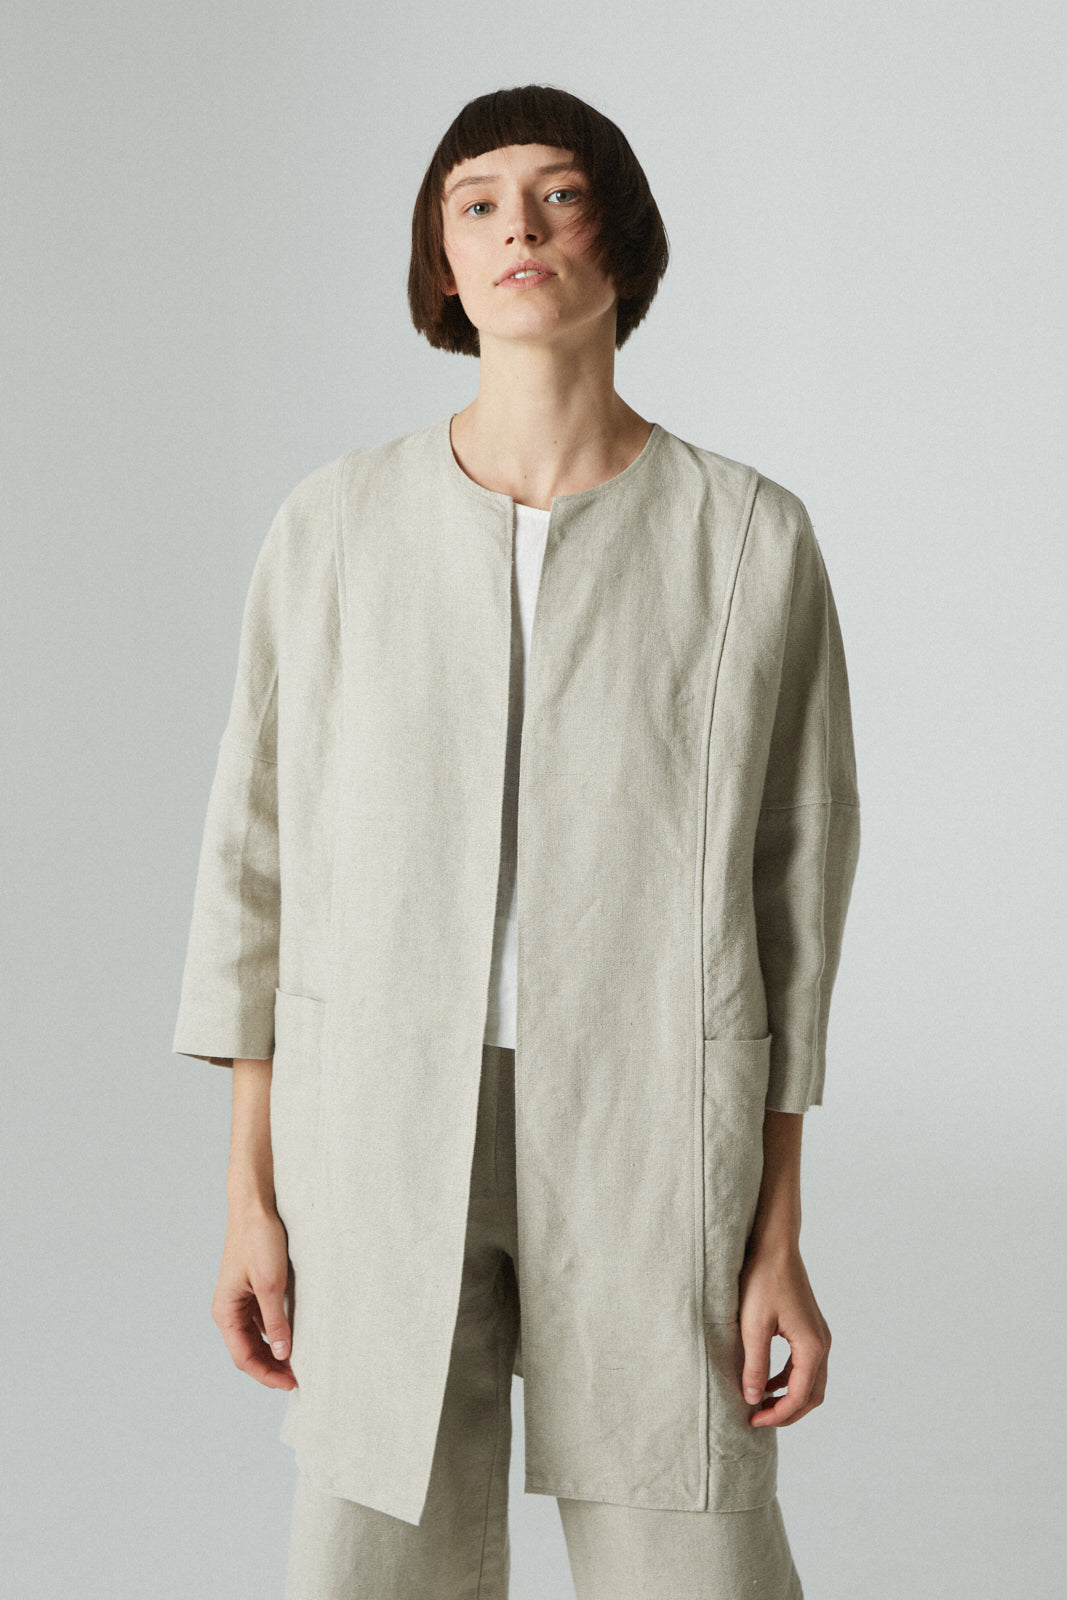 HEAVY JUNIPER JACKET